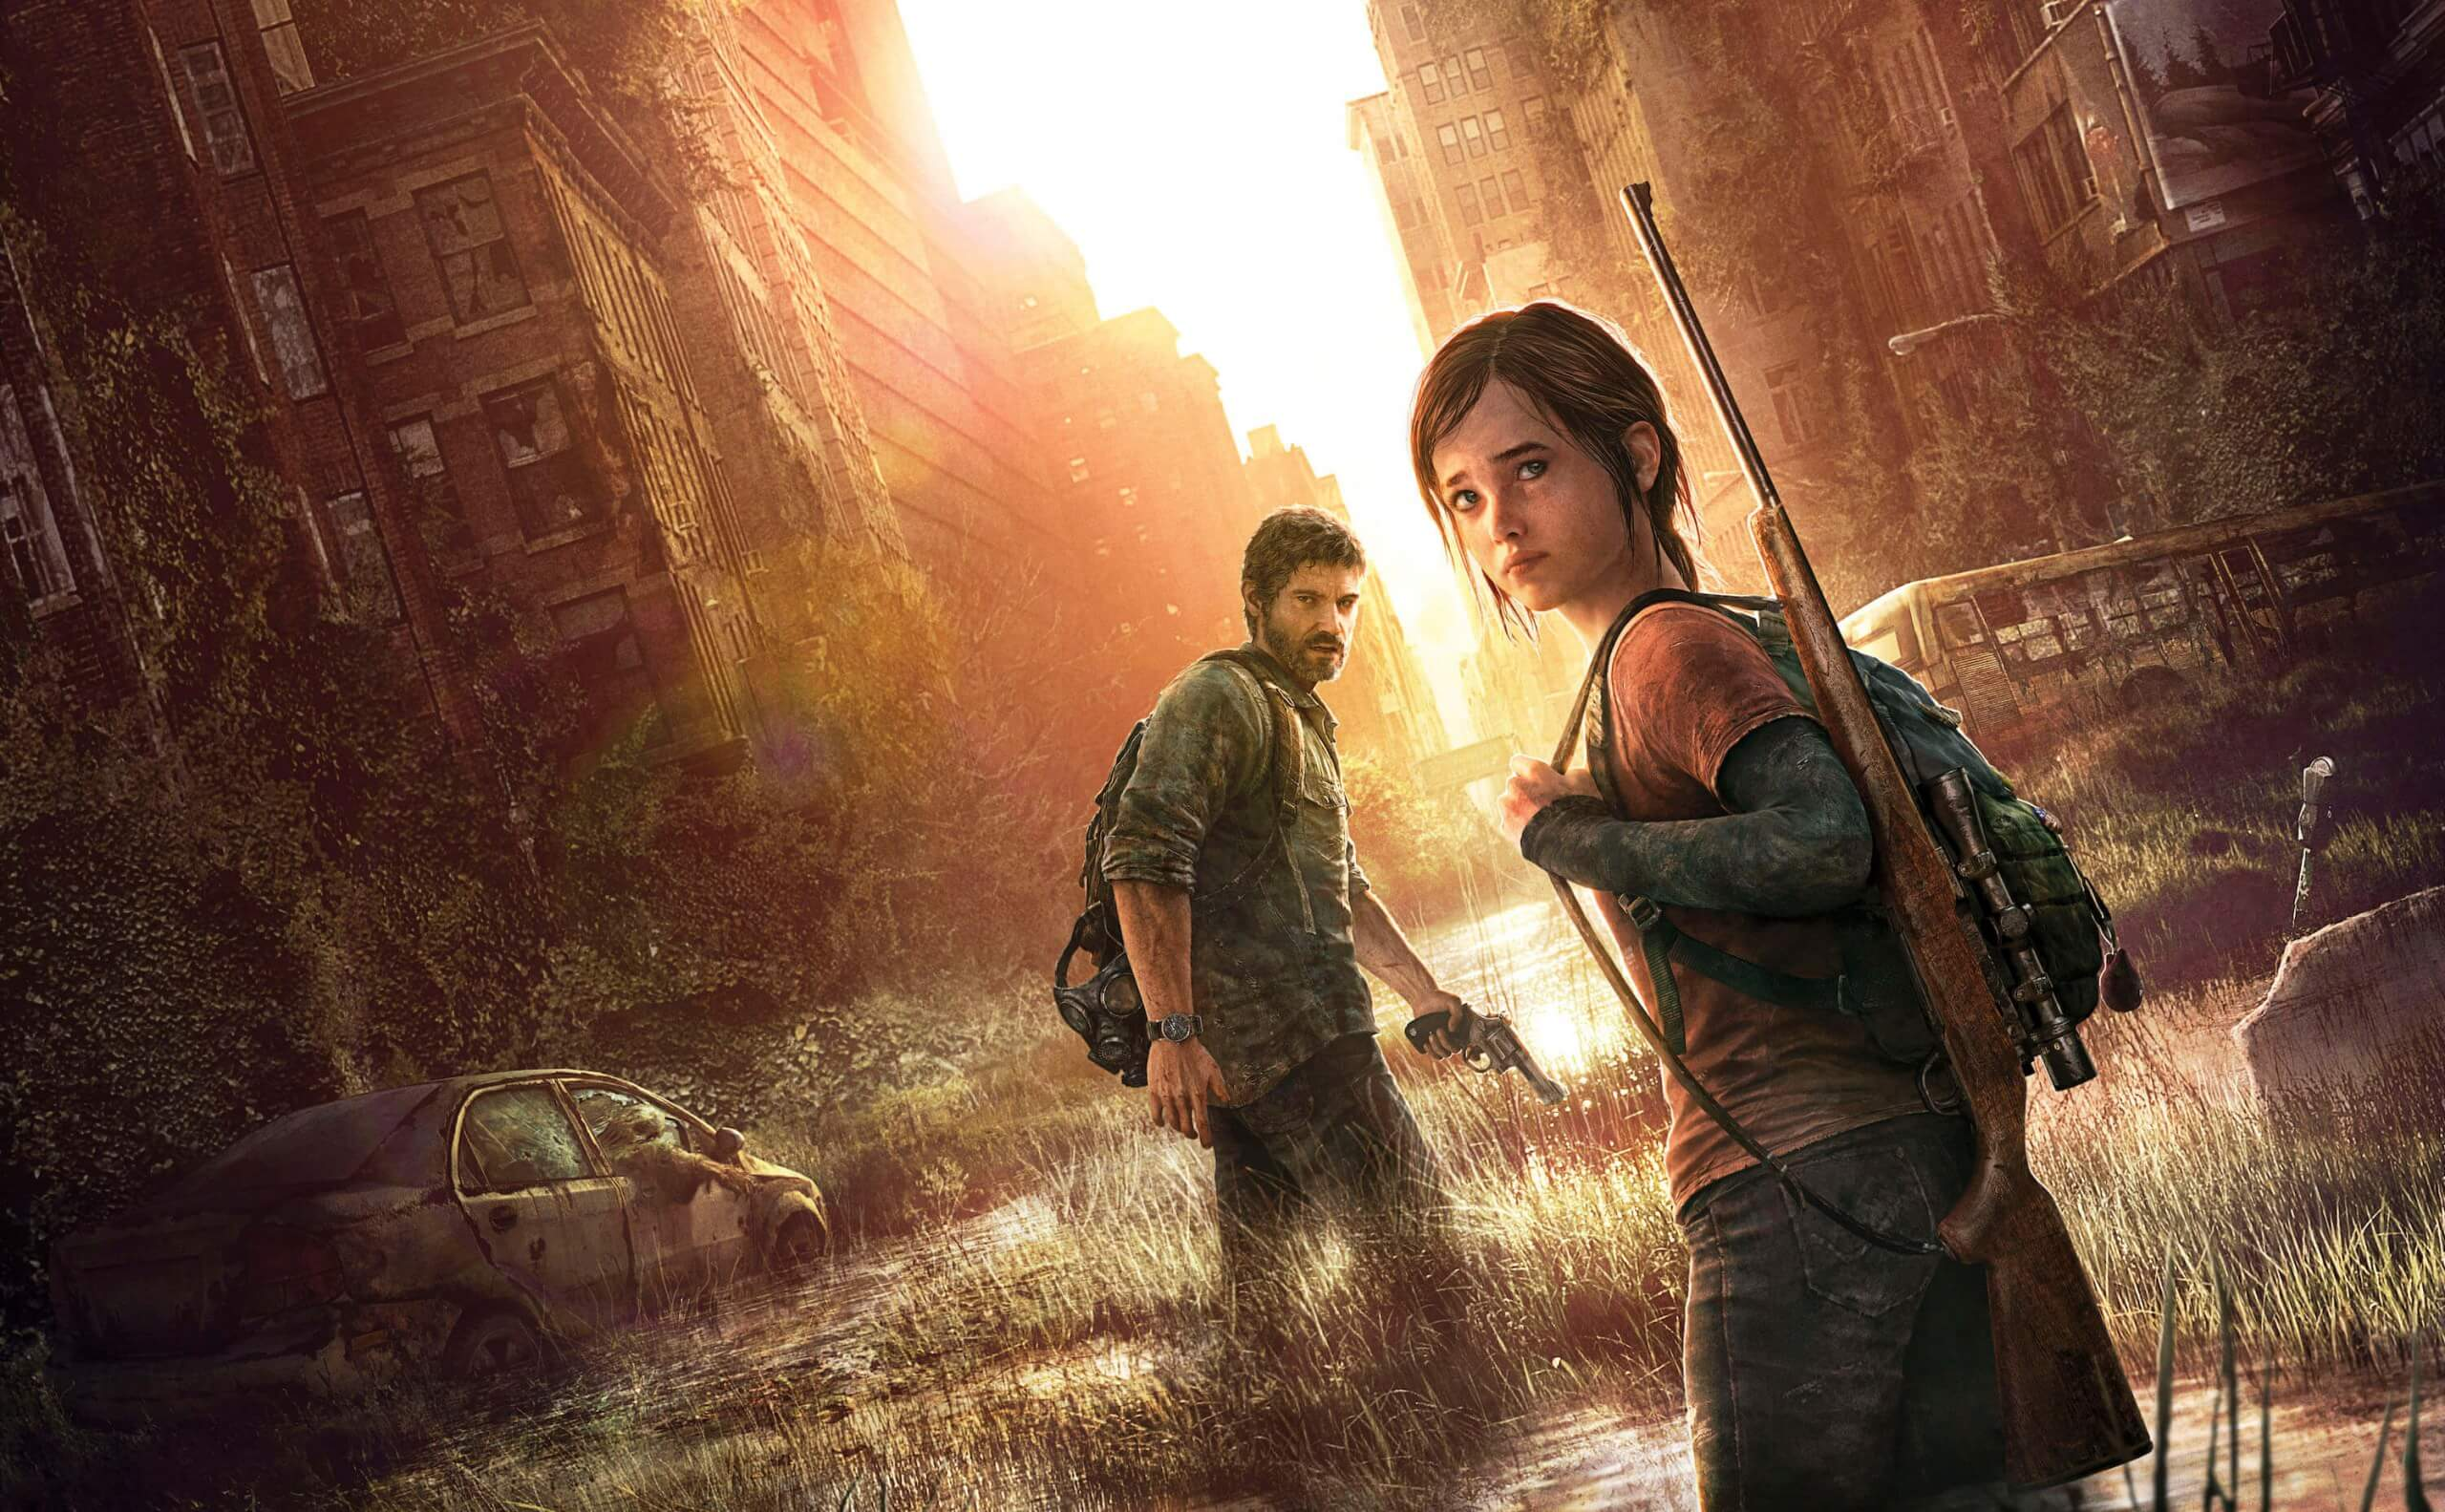 Naughty Dog and 'Chernobyl' creator partner to pen 'The Last of Us' TV series for HBO